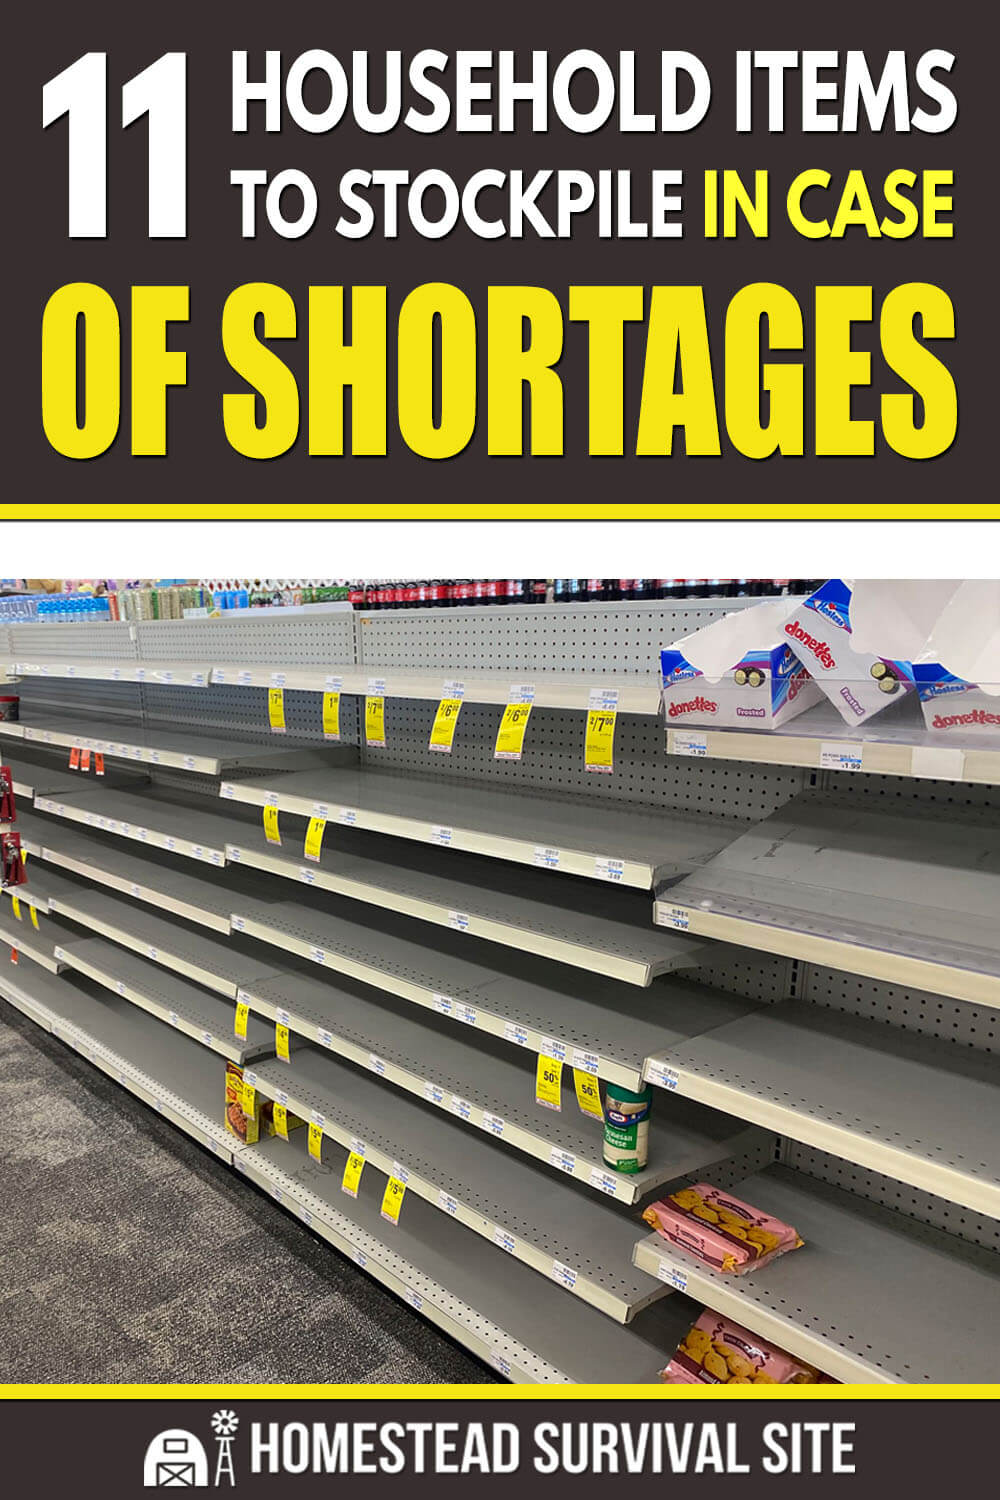 11 Household Items To Stockpile In Case of Shortages